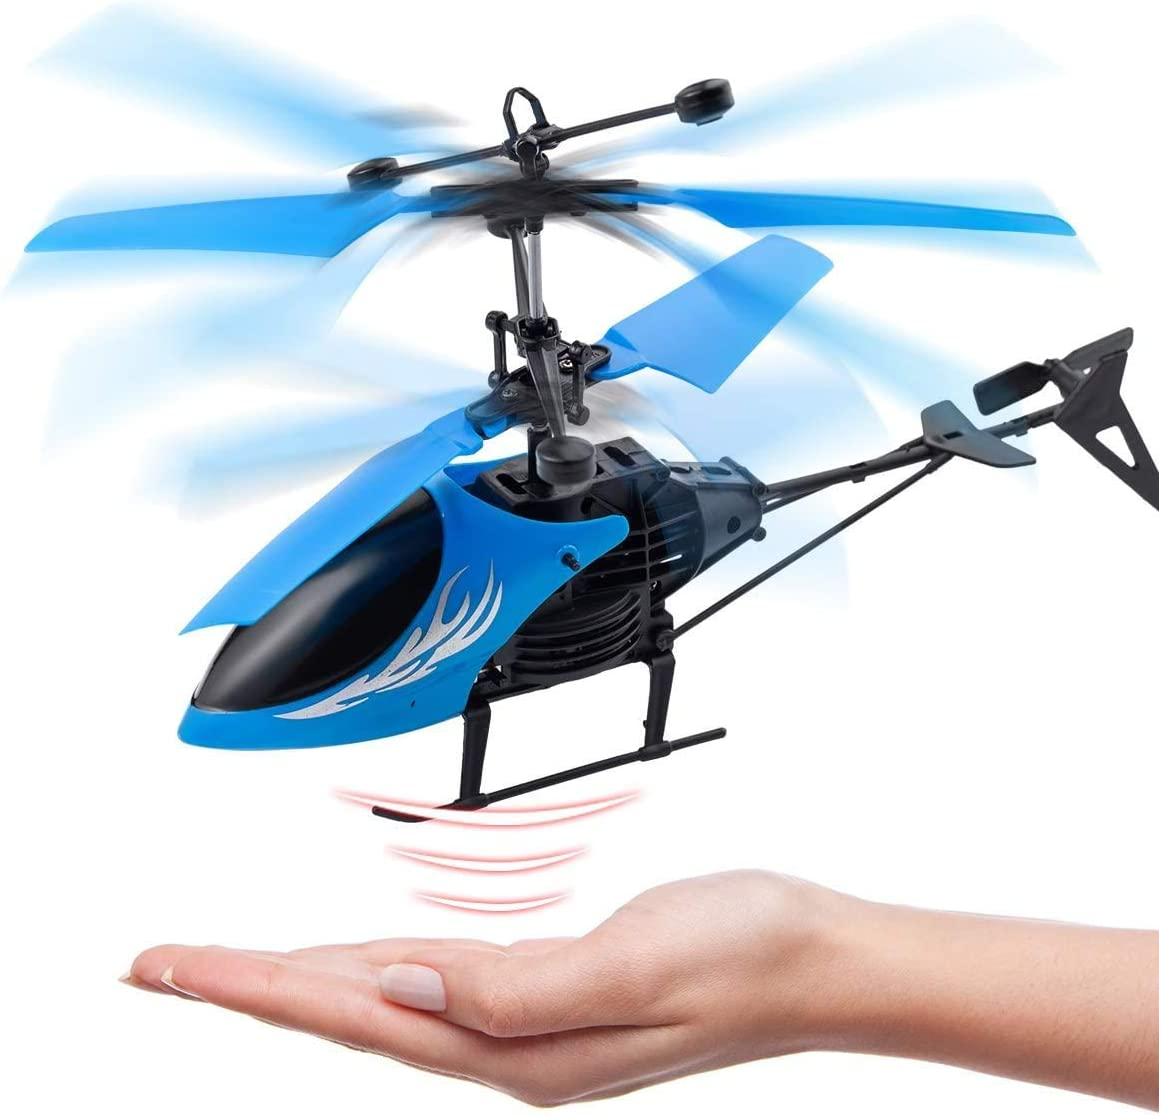 Blue One Key take Off//Landing VEZARON RC Helicopter USB Remote Control Helicopter Kids Toy 2CH Gyro Helicopter RC Drone for Indoor to Fly for Kids and Beginner